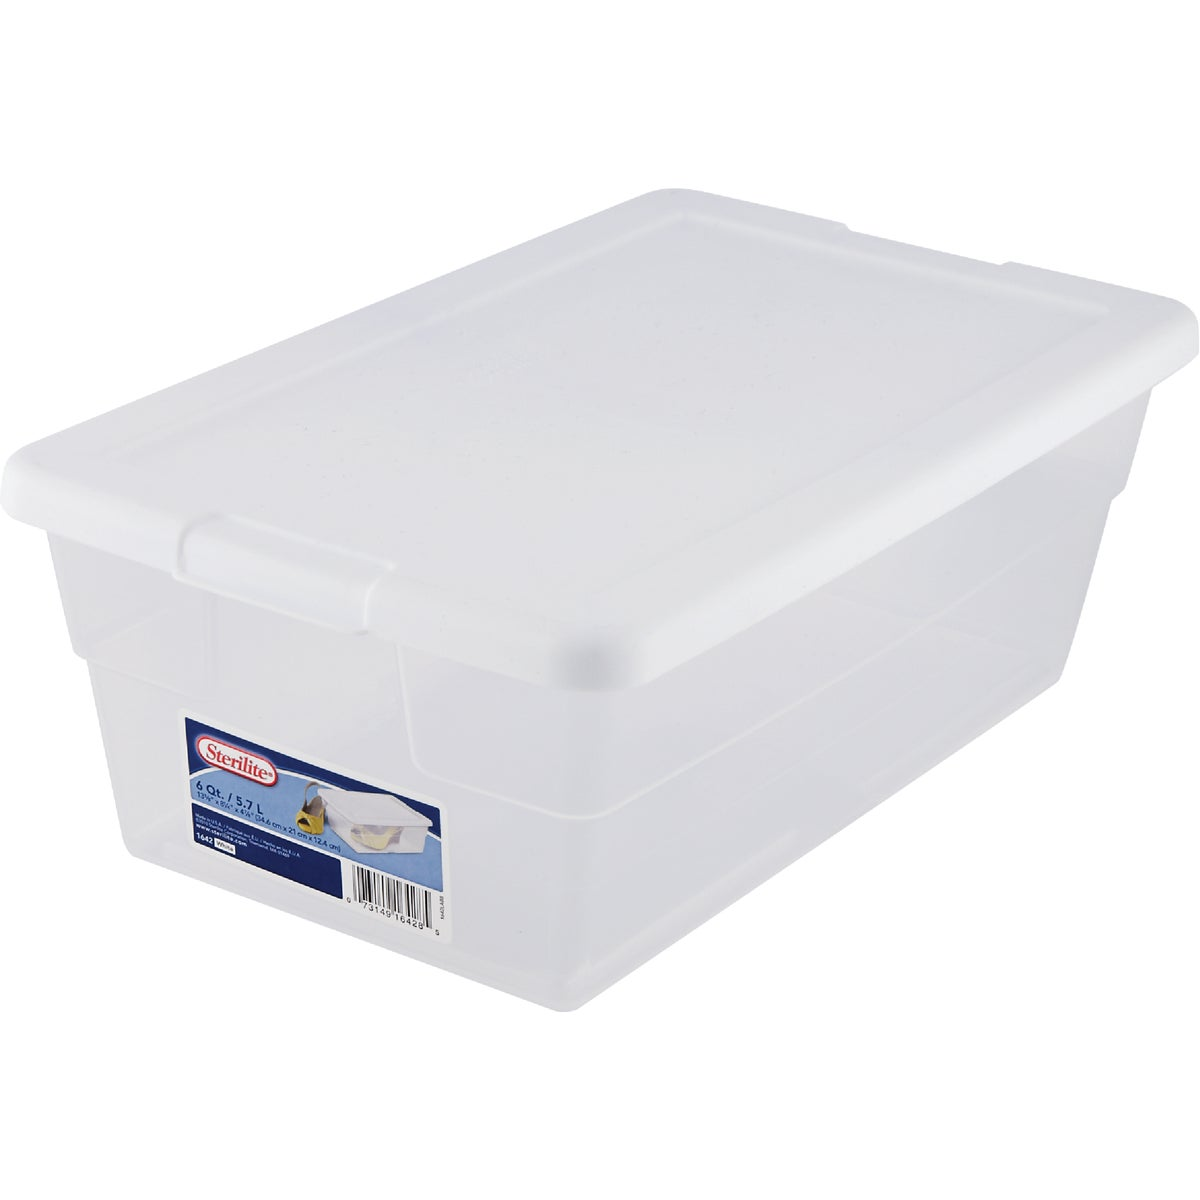 6 QUART STORAGE BOX